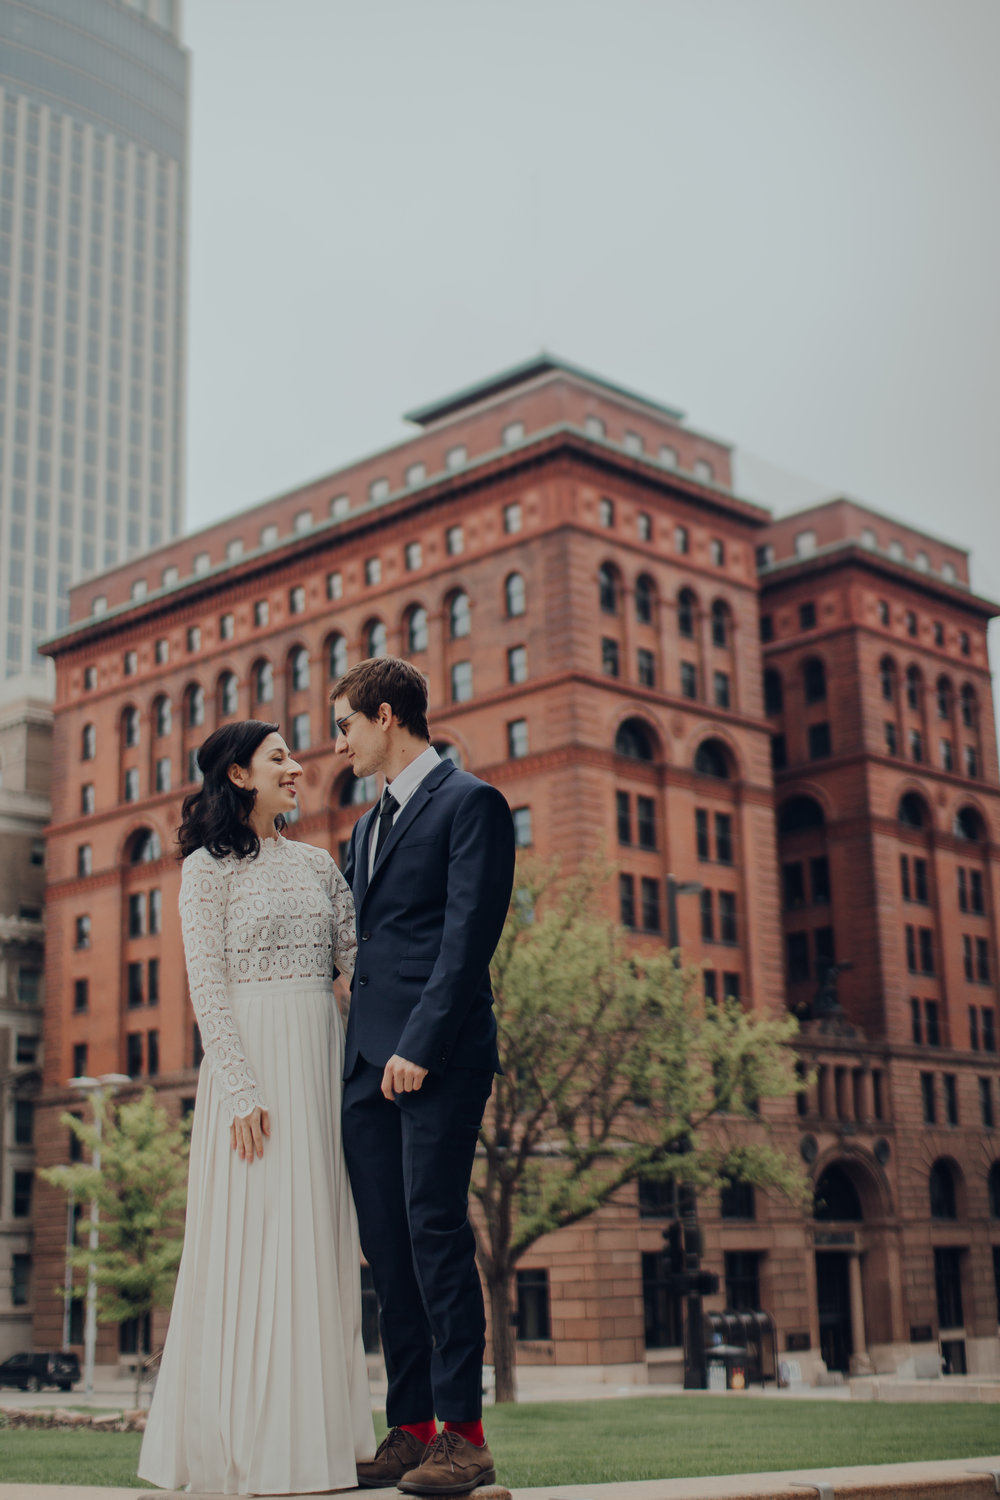 Christine+Jacob-8.jpg